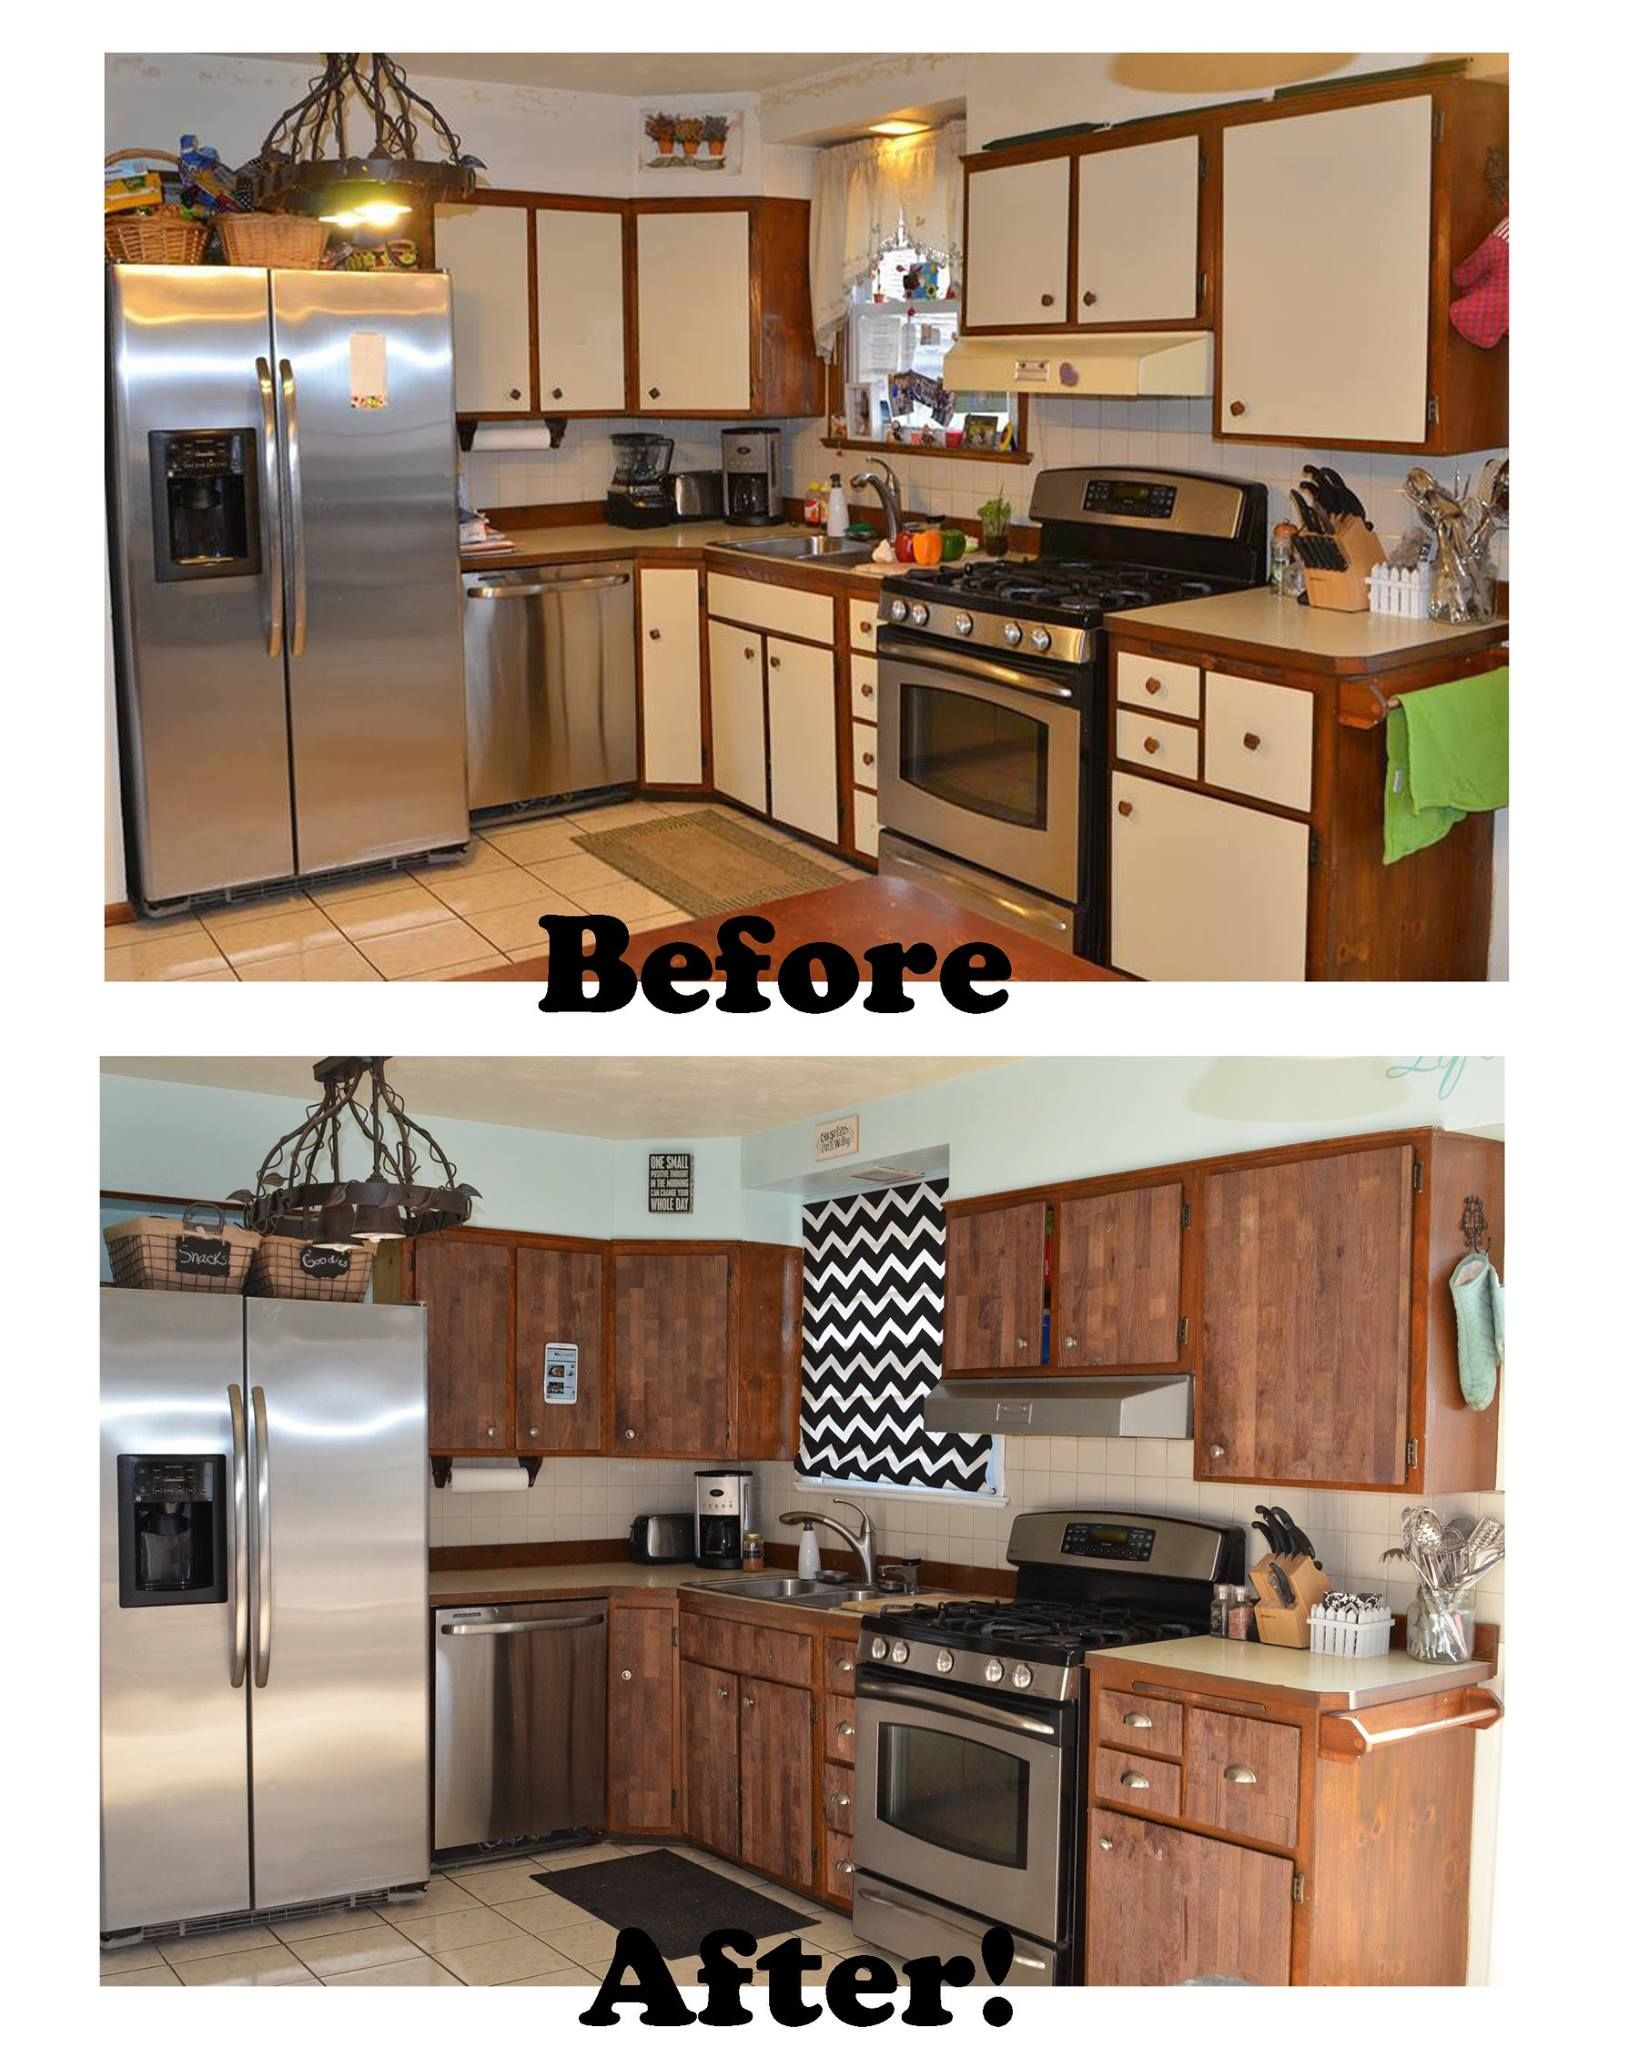 Laminate Kitchen Cabinets With Oak Trim Stikwood Before And After Kitchen Makeover Ugly Laminate